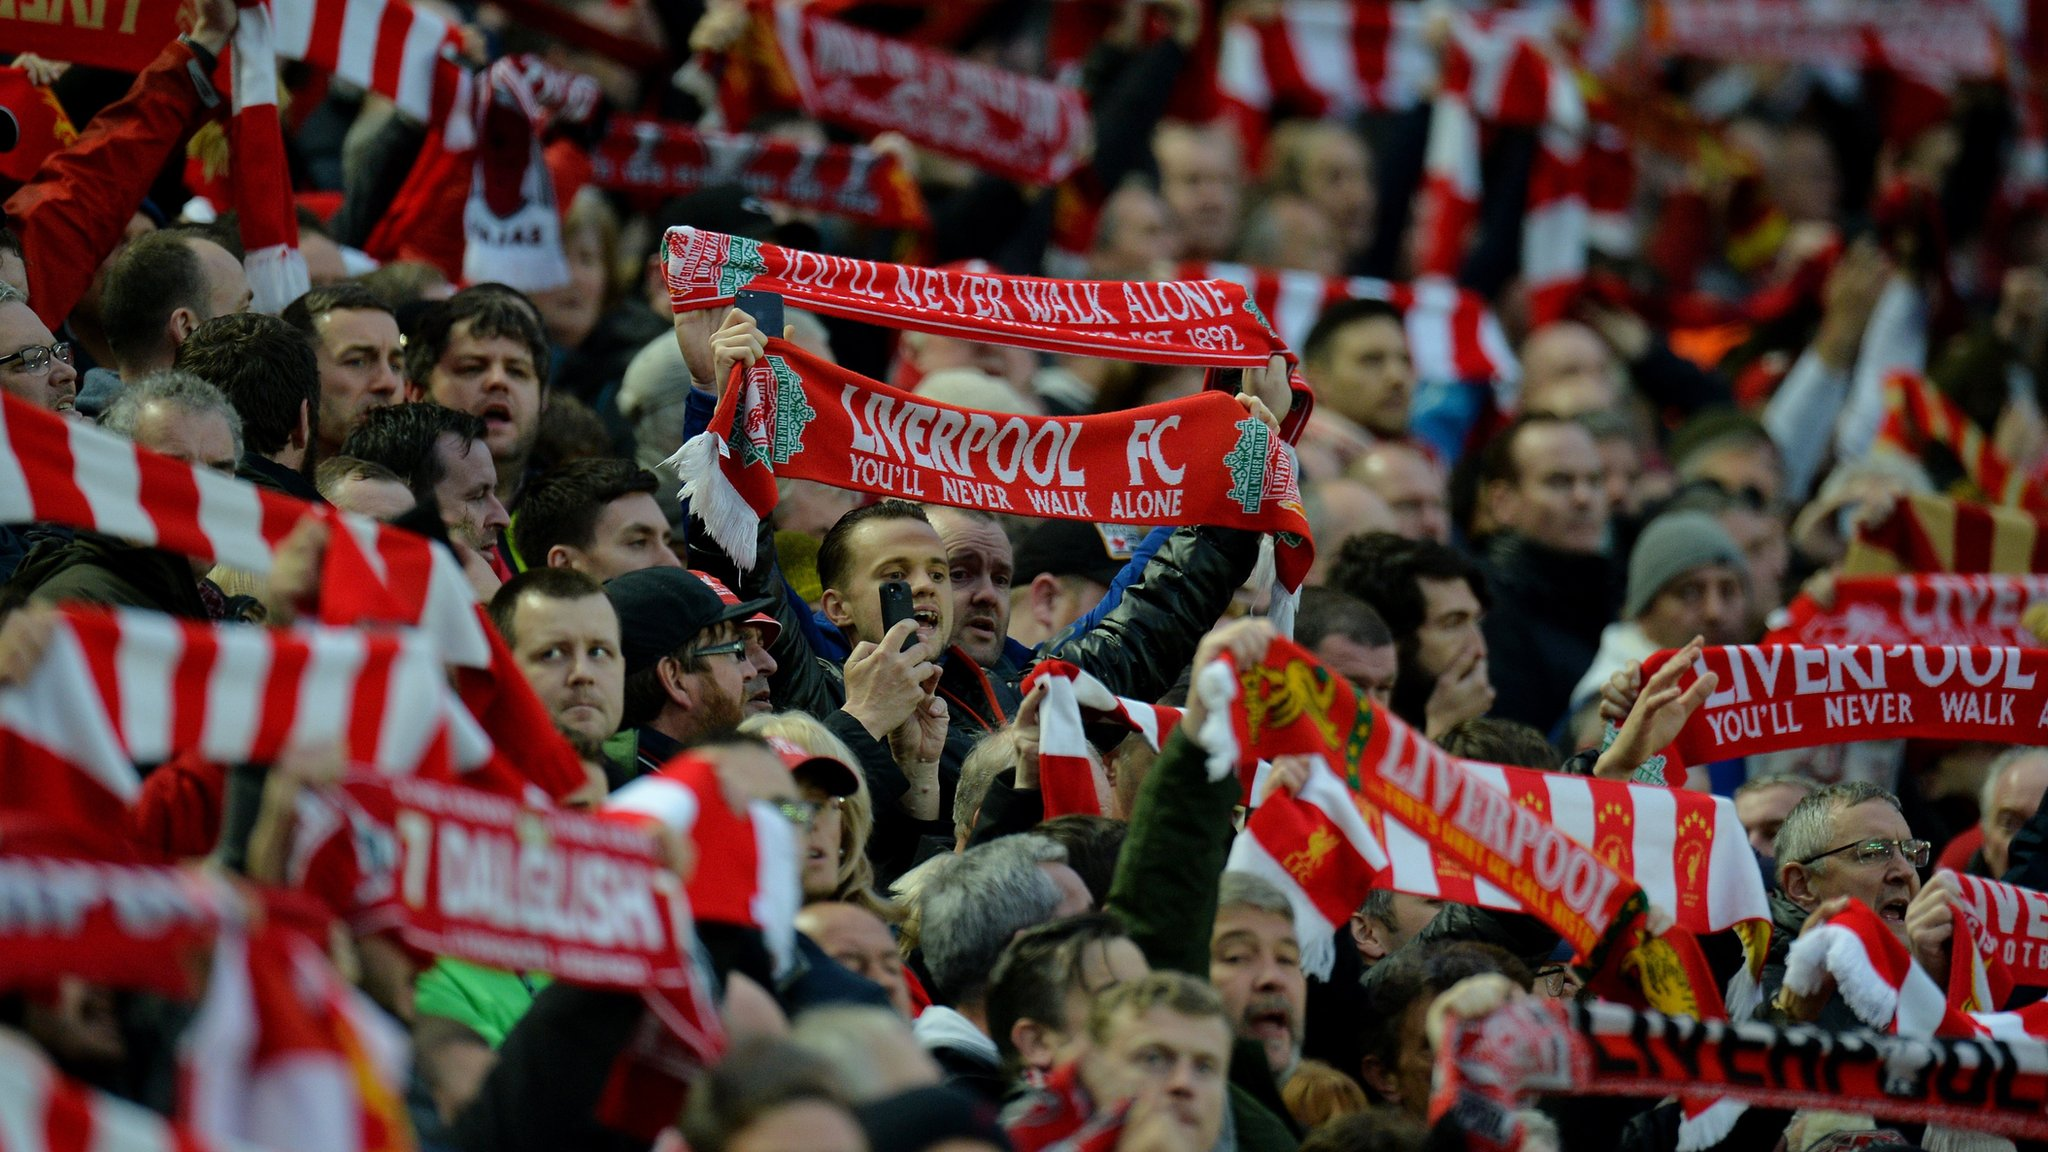 Liverpool call meeting amid safety fears before Roma match